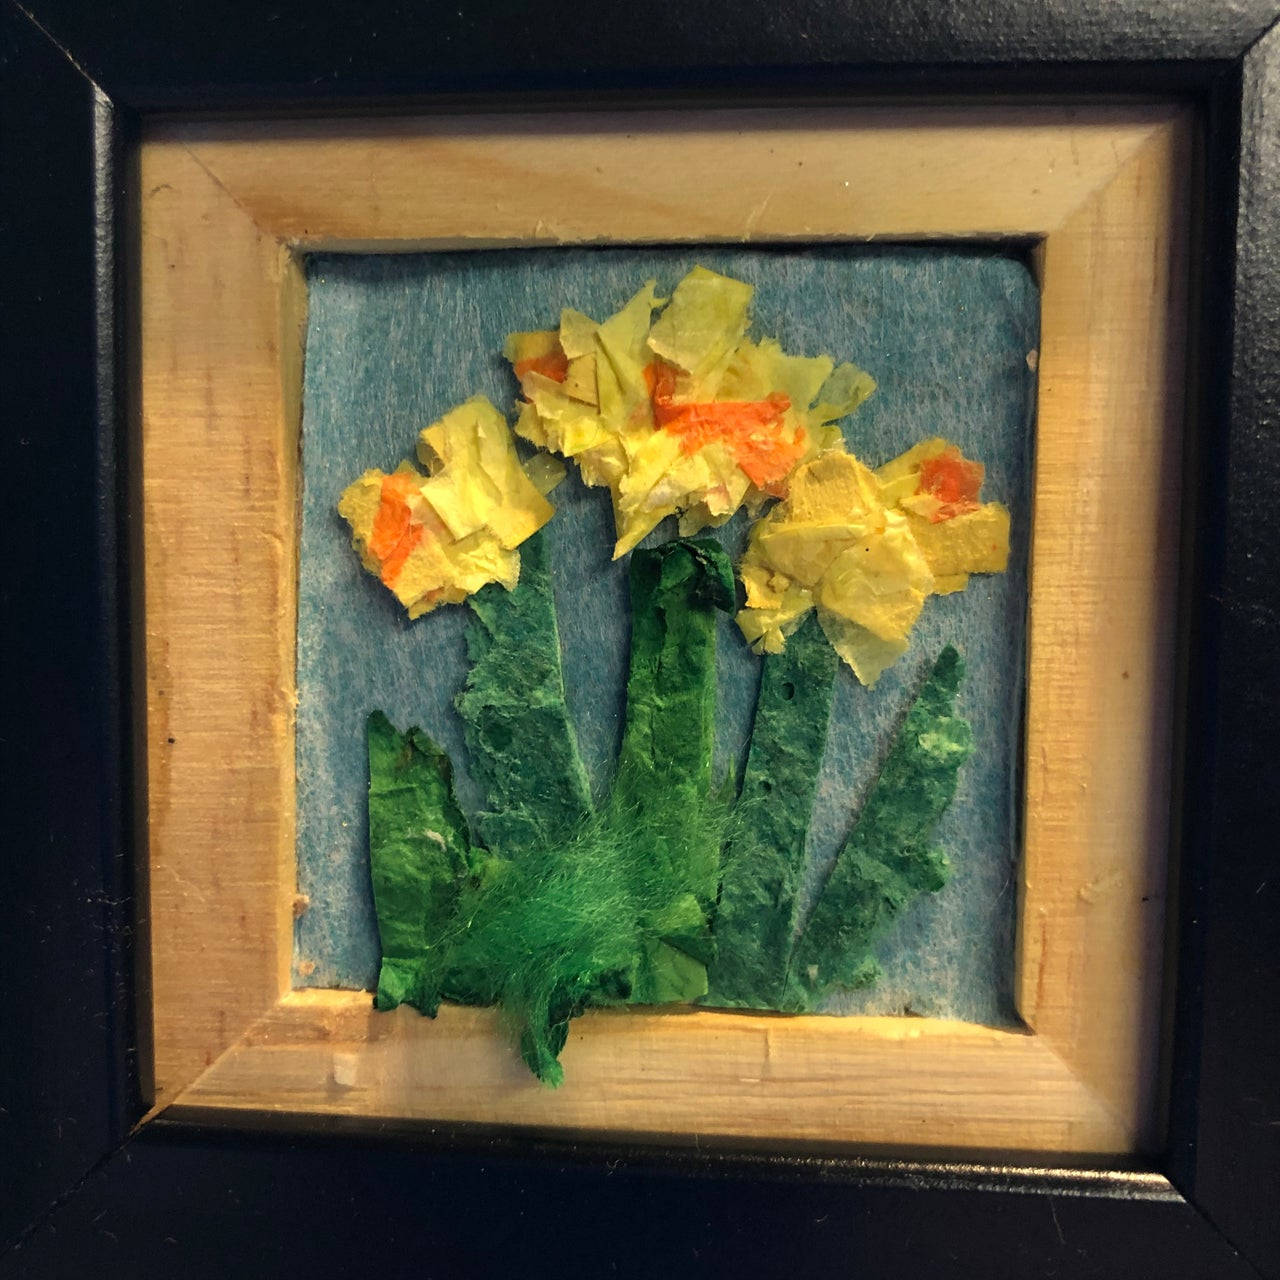 Paper collage of daffodils